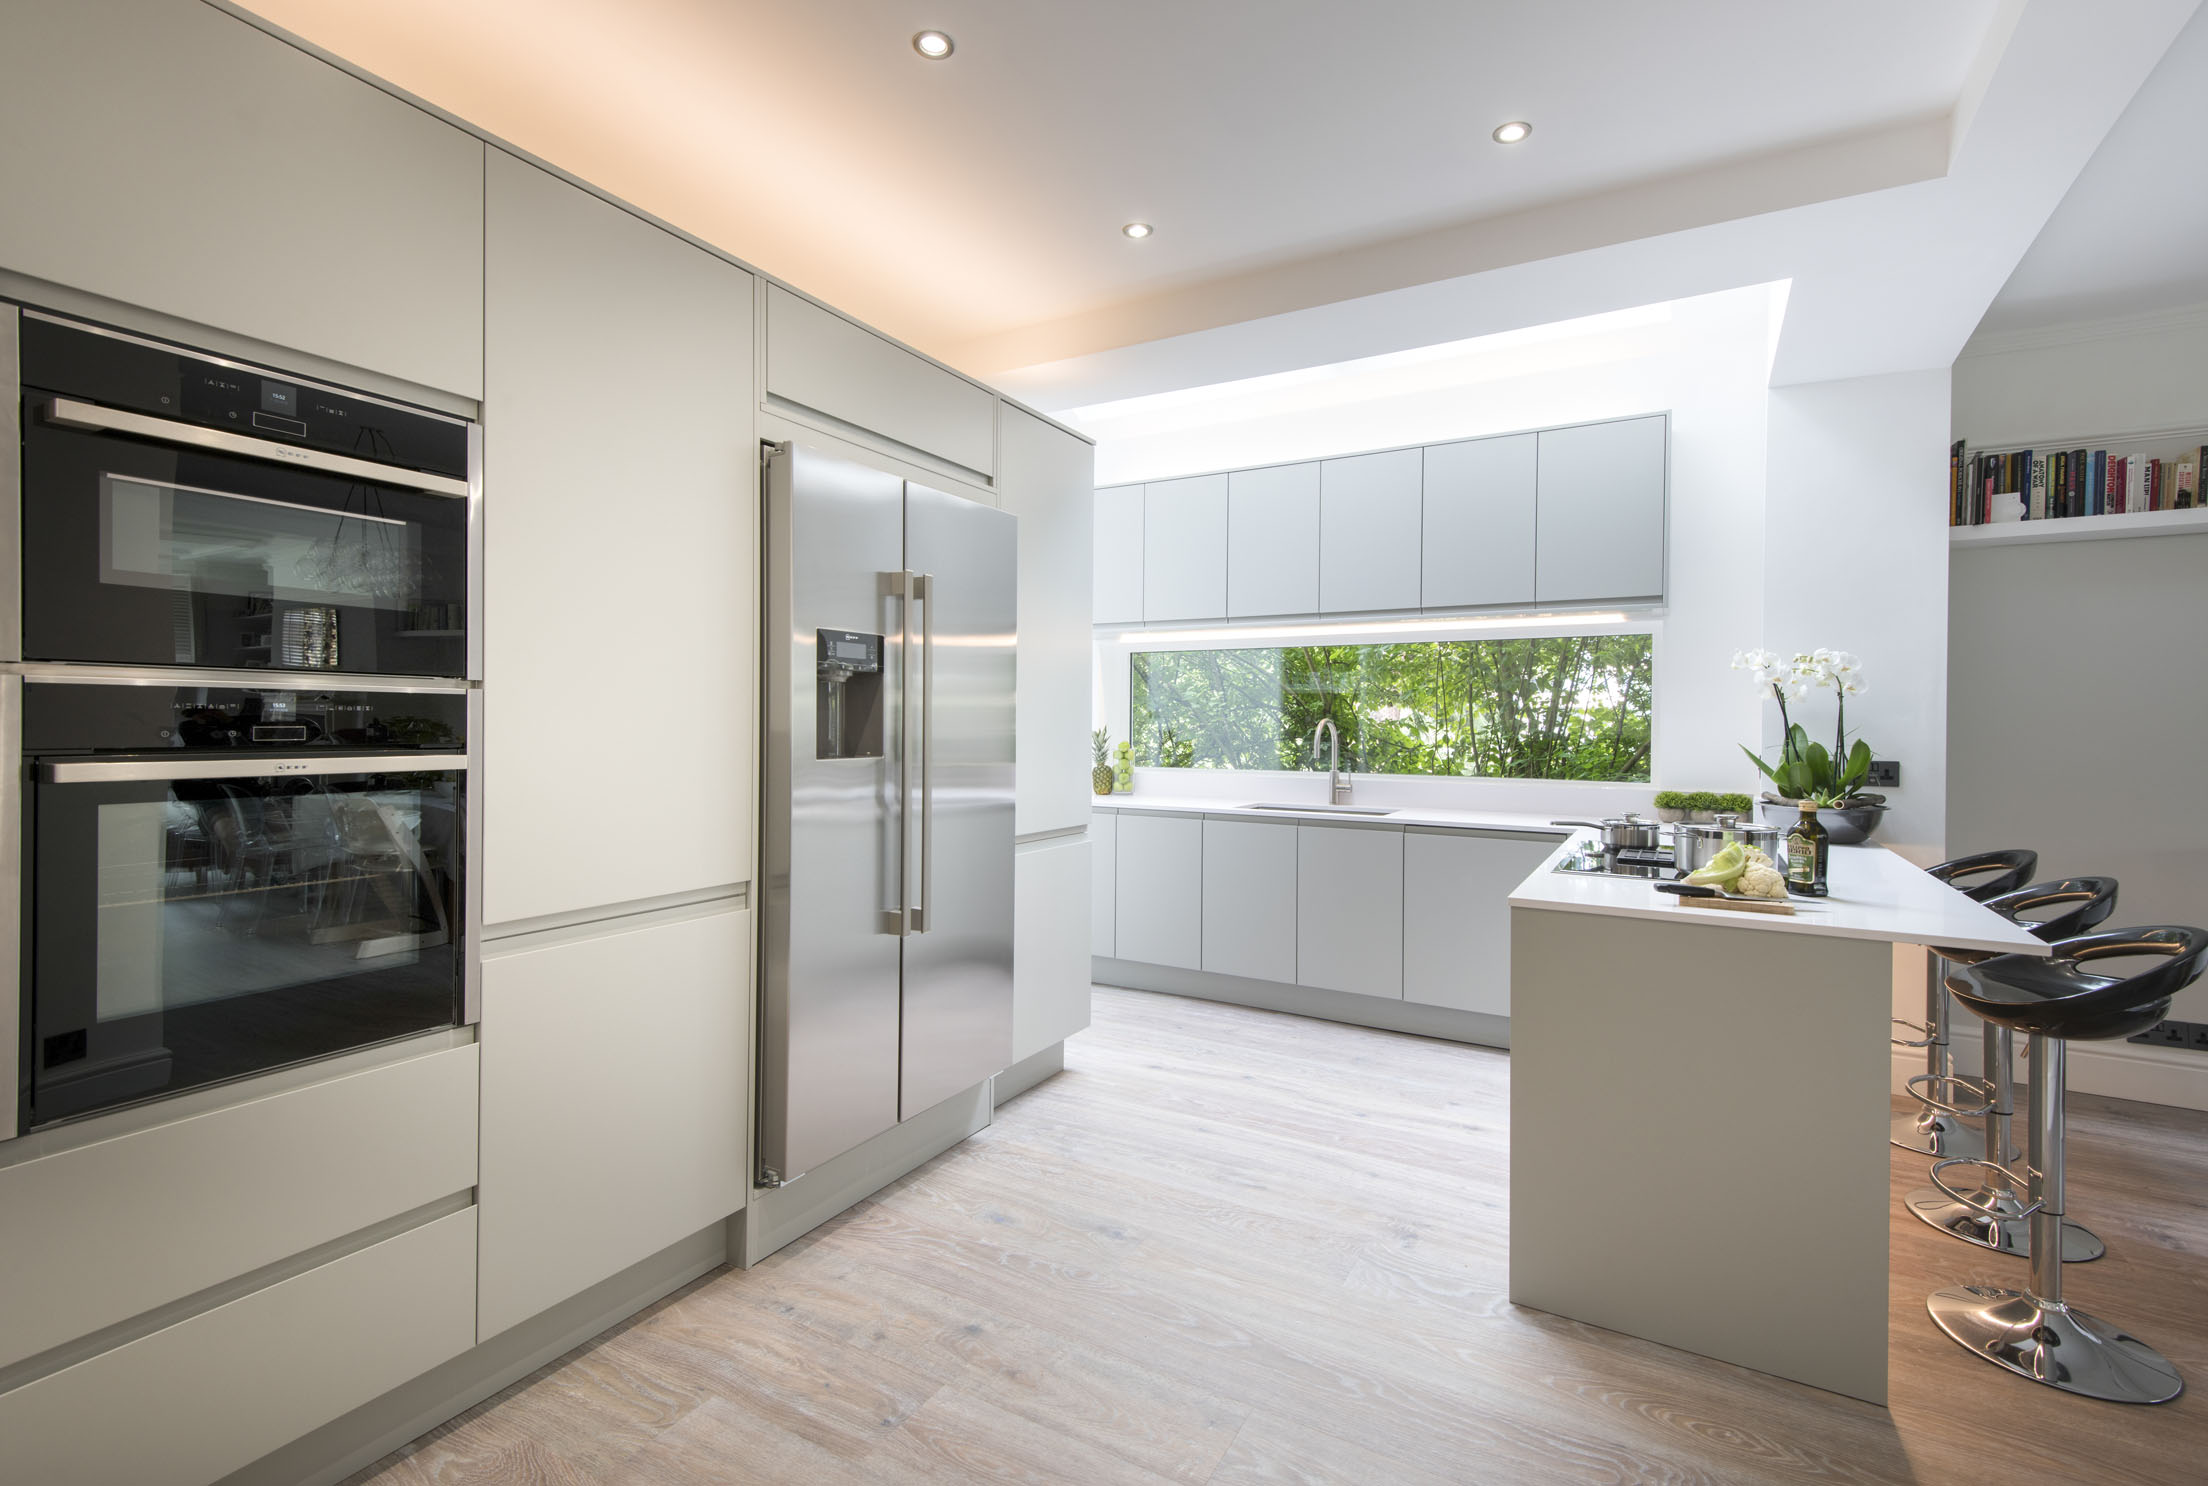 Kew Gardens Kitchen by Kuche & Bagno